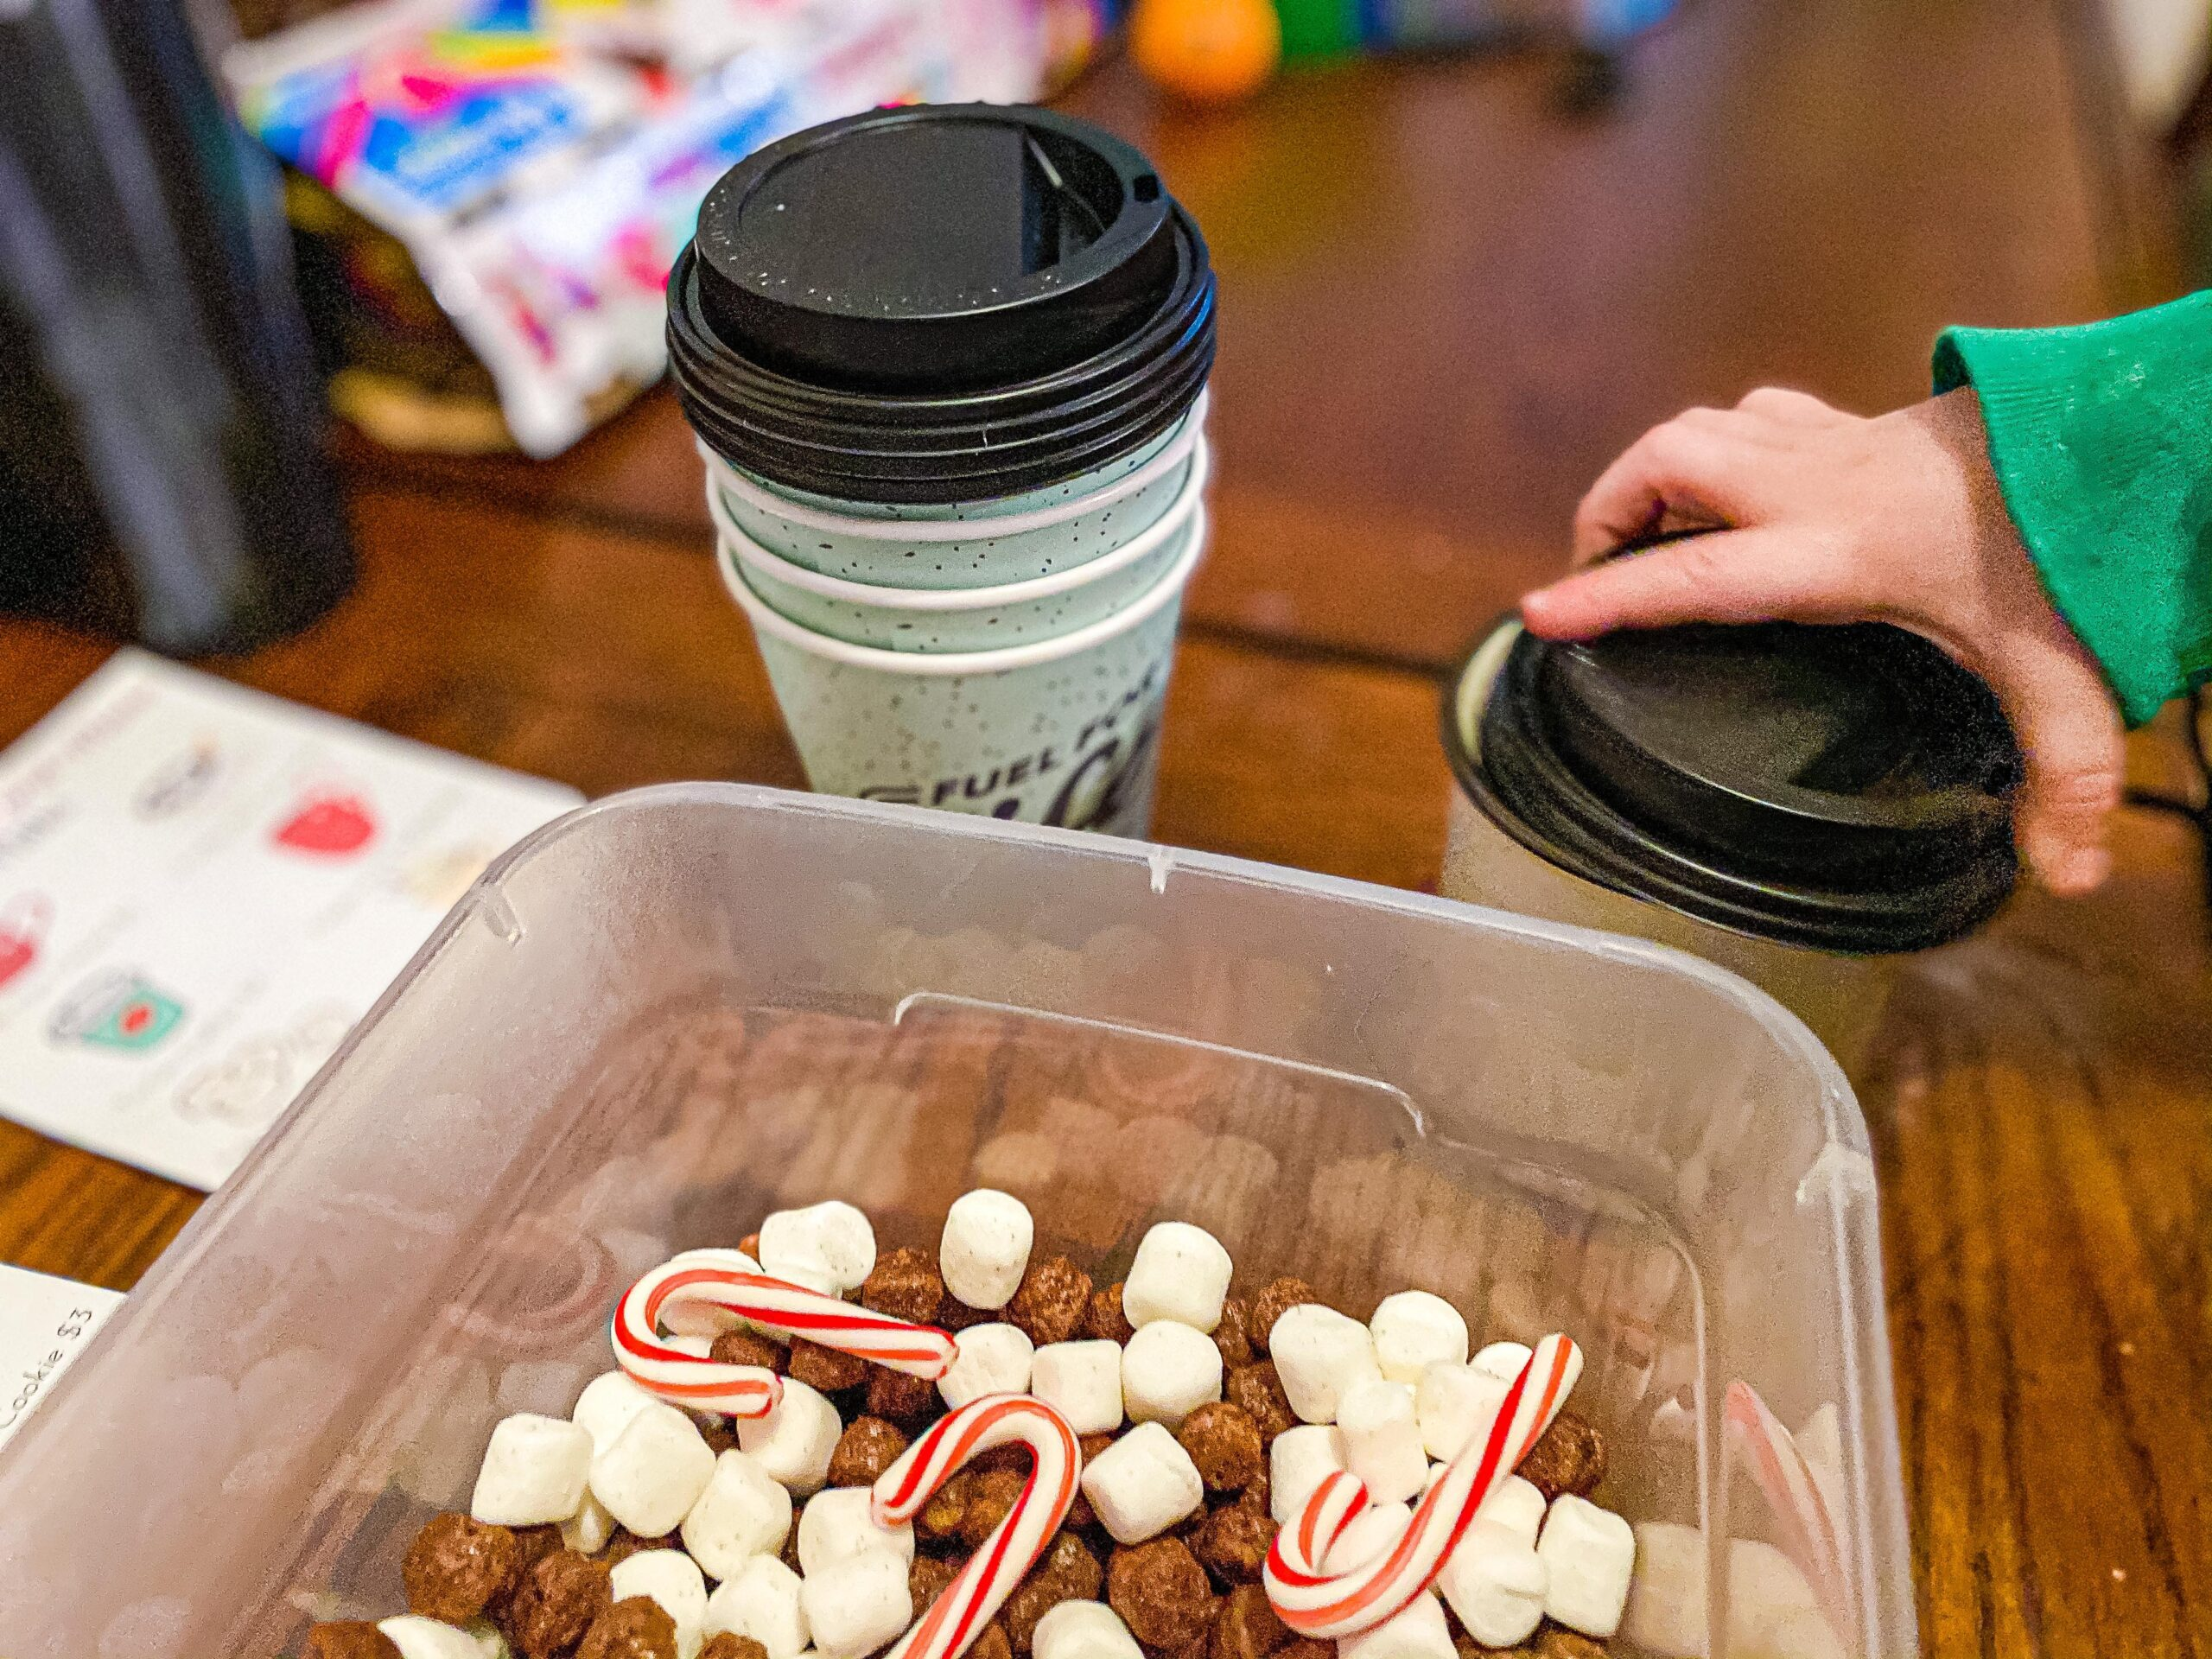 Hot Chocolate Sensory Bin for Toddlers and Preschoolers